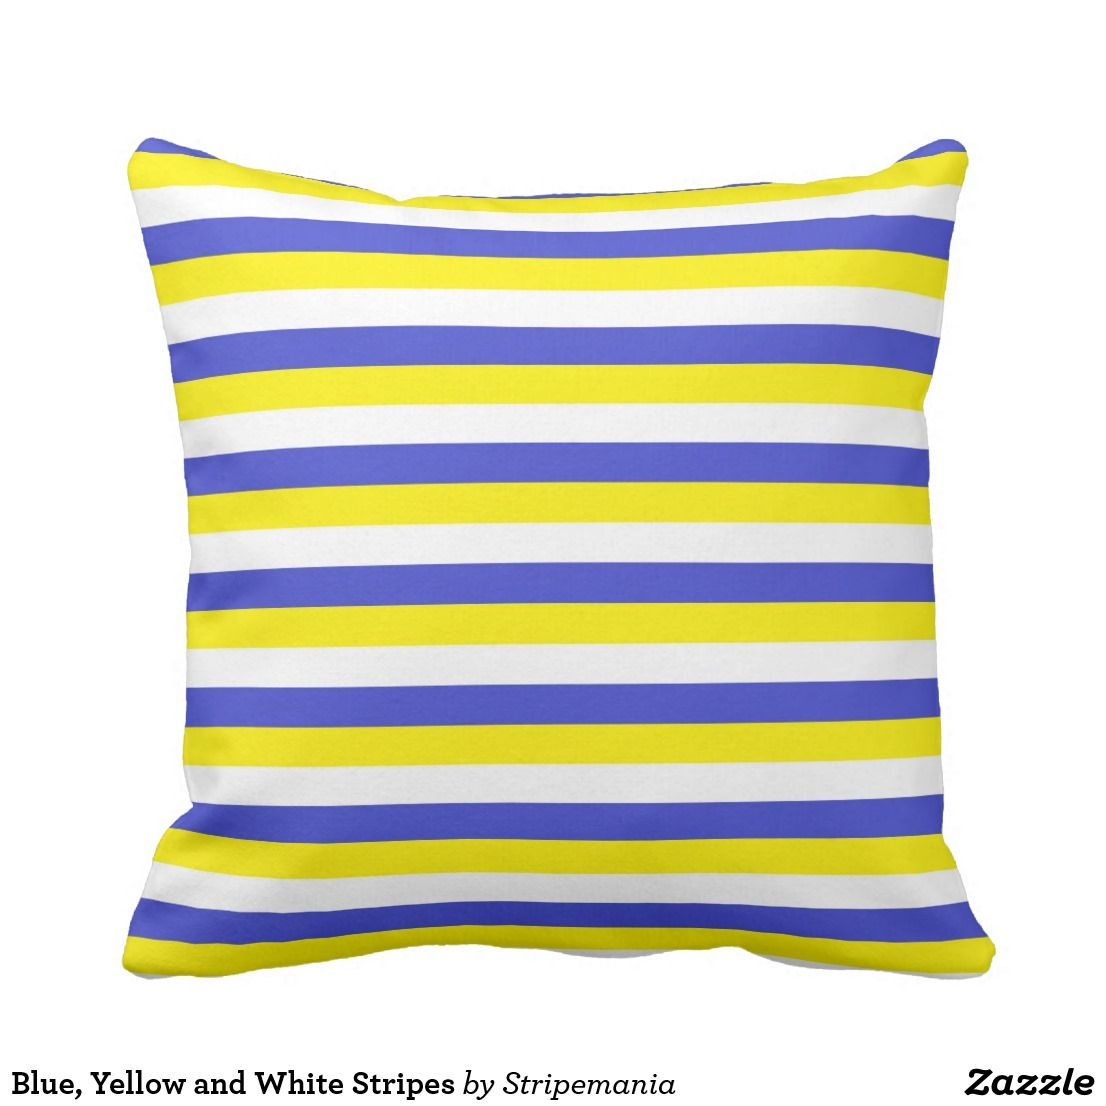 Yellow and blue striped throw pillow